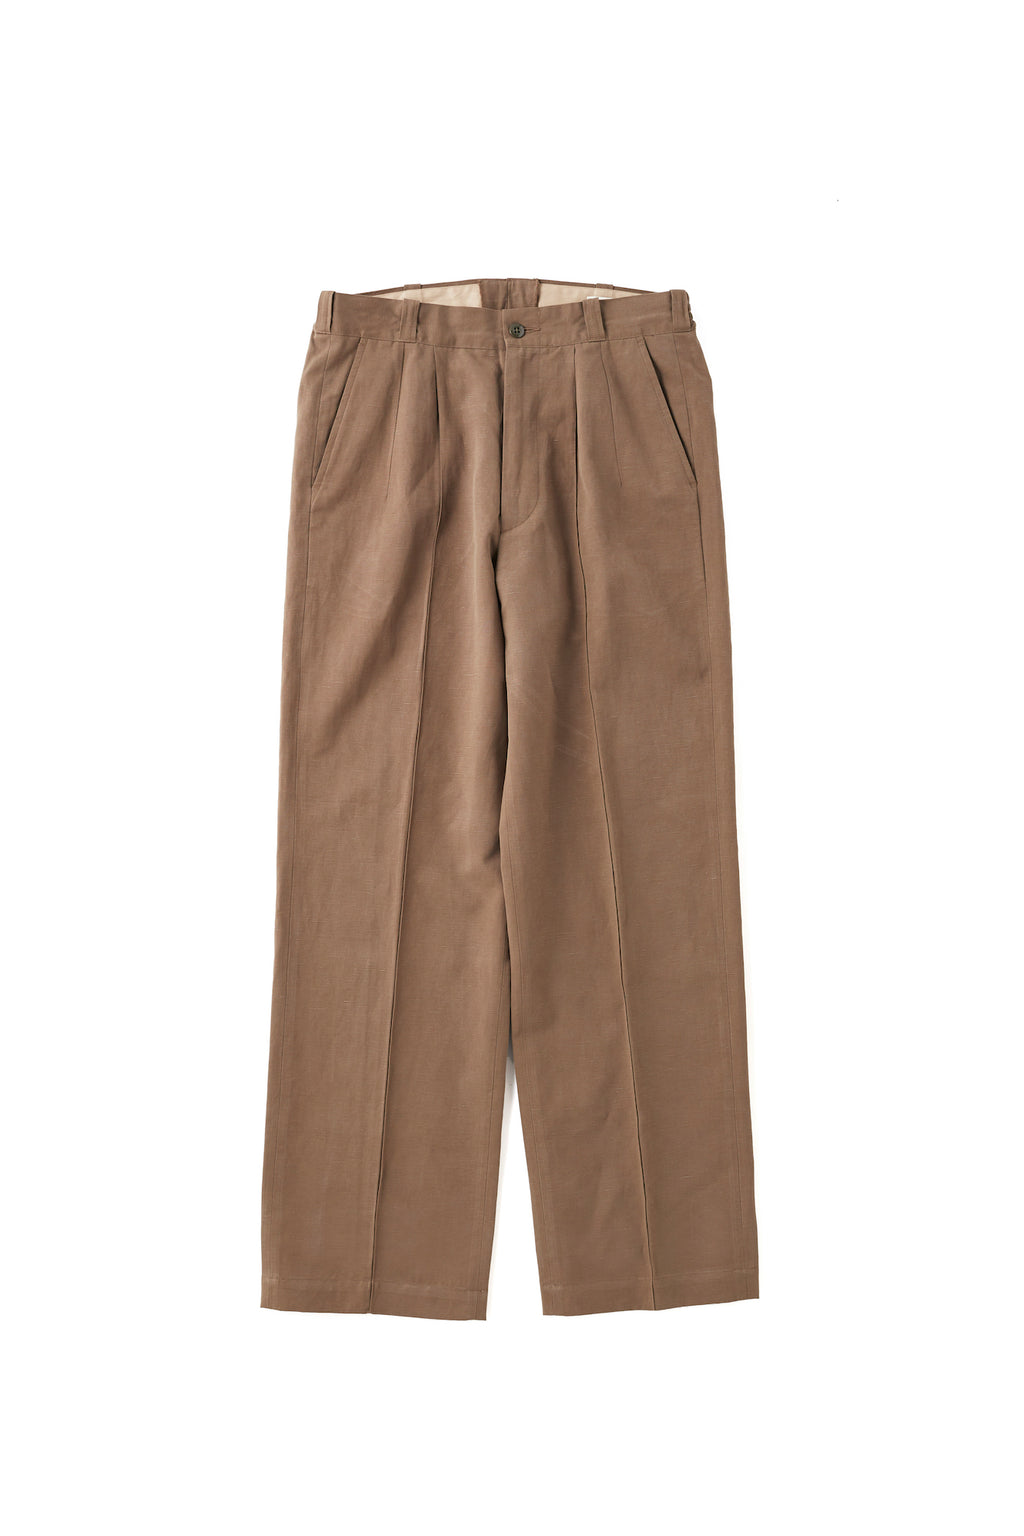 FRONT TUCK ARMY TROUSER - 201OJ-PT06